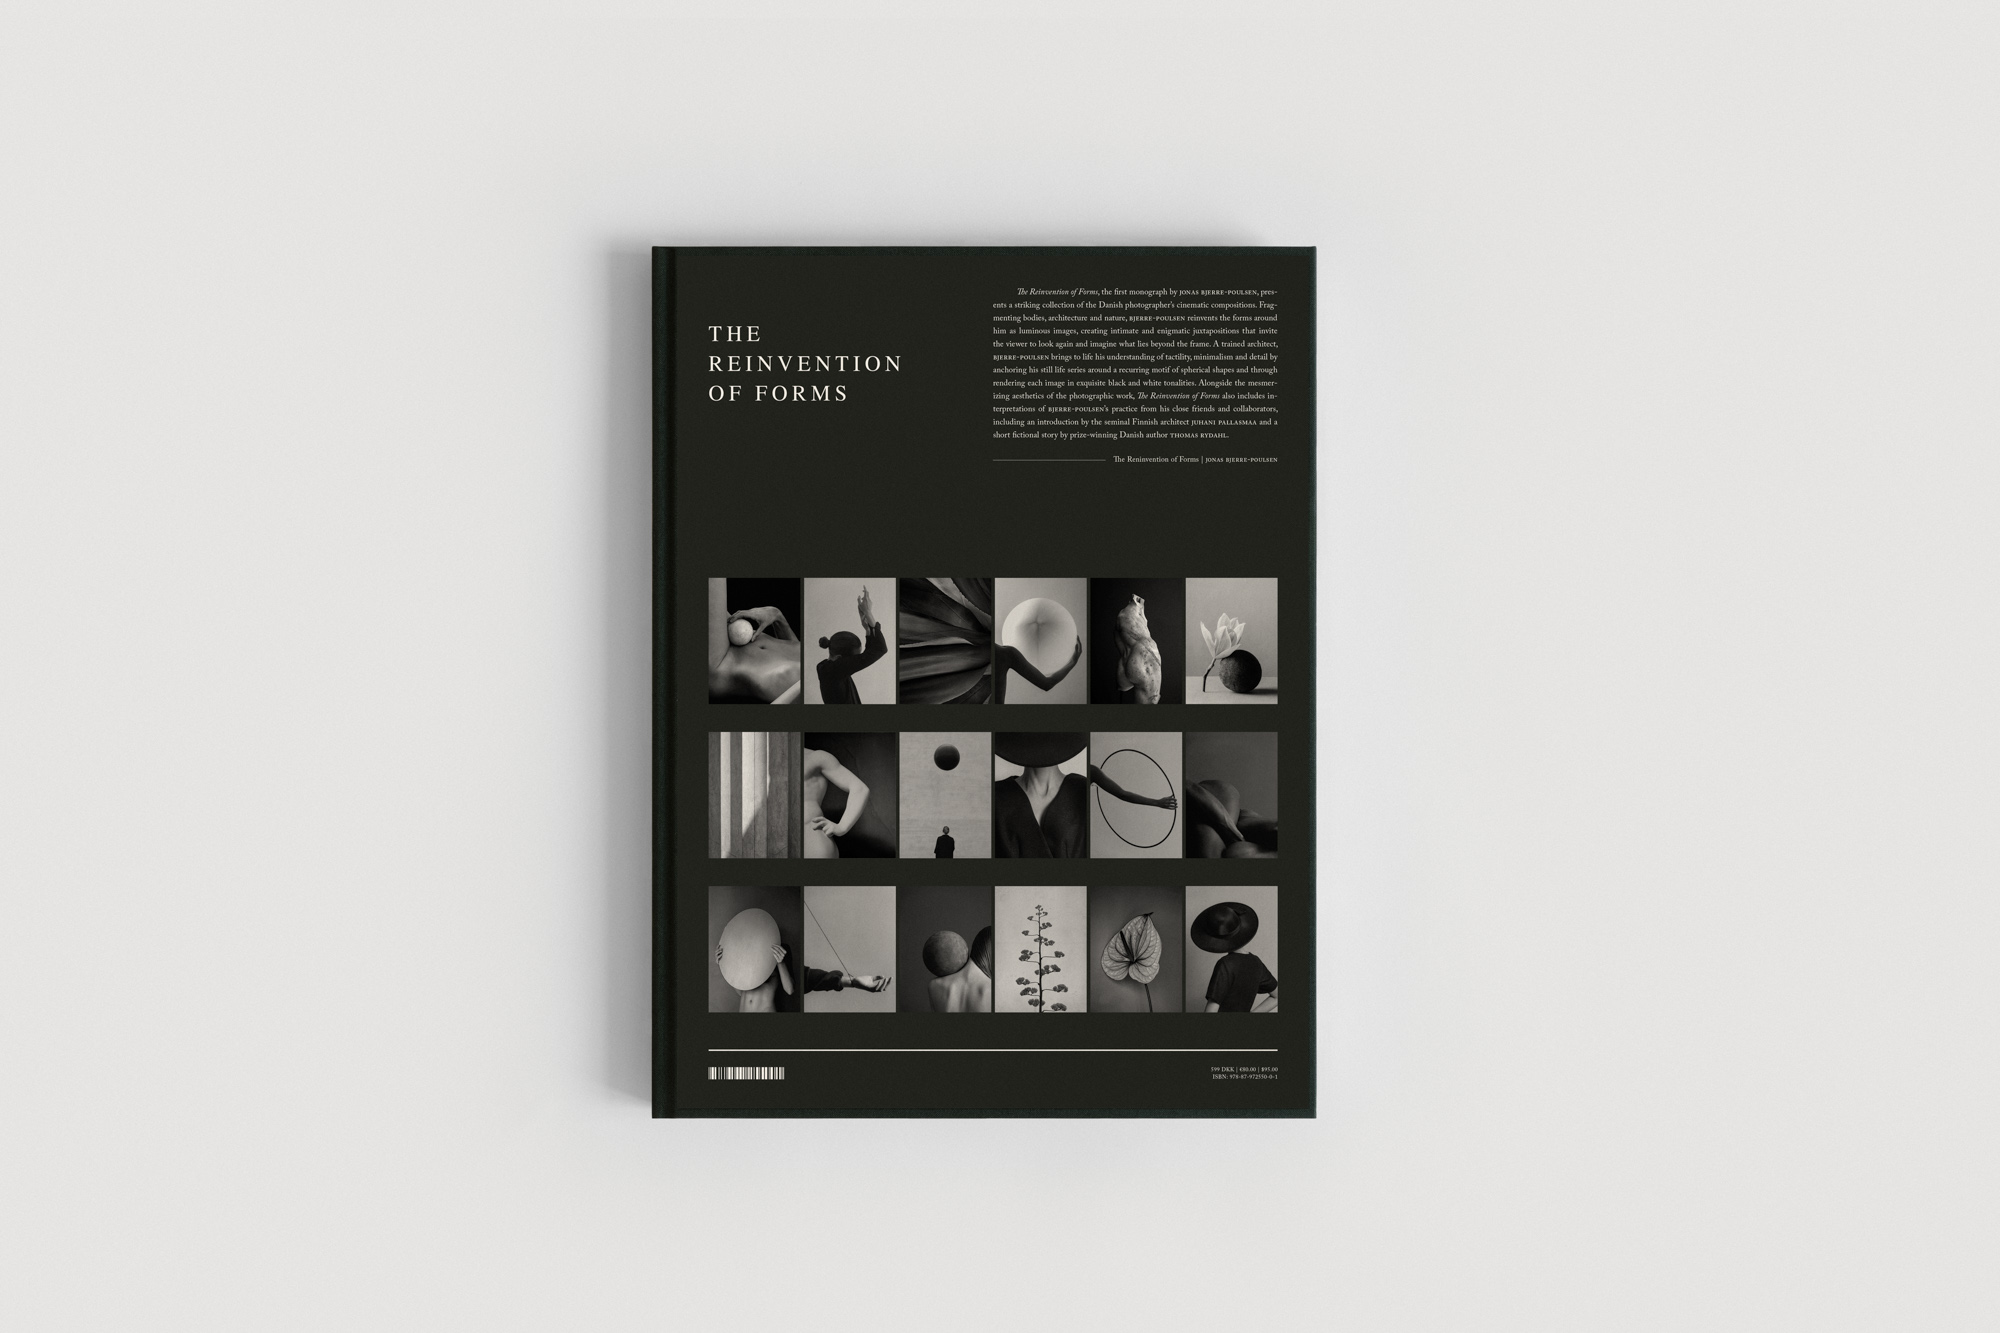 Jonas-Bjerre-Poulsen-The-Reinvention-of-Forms-Book-Packshots-Web-01